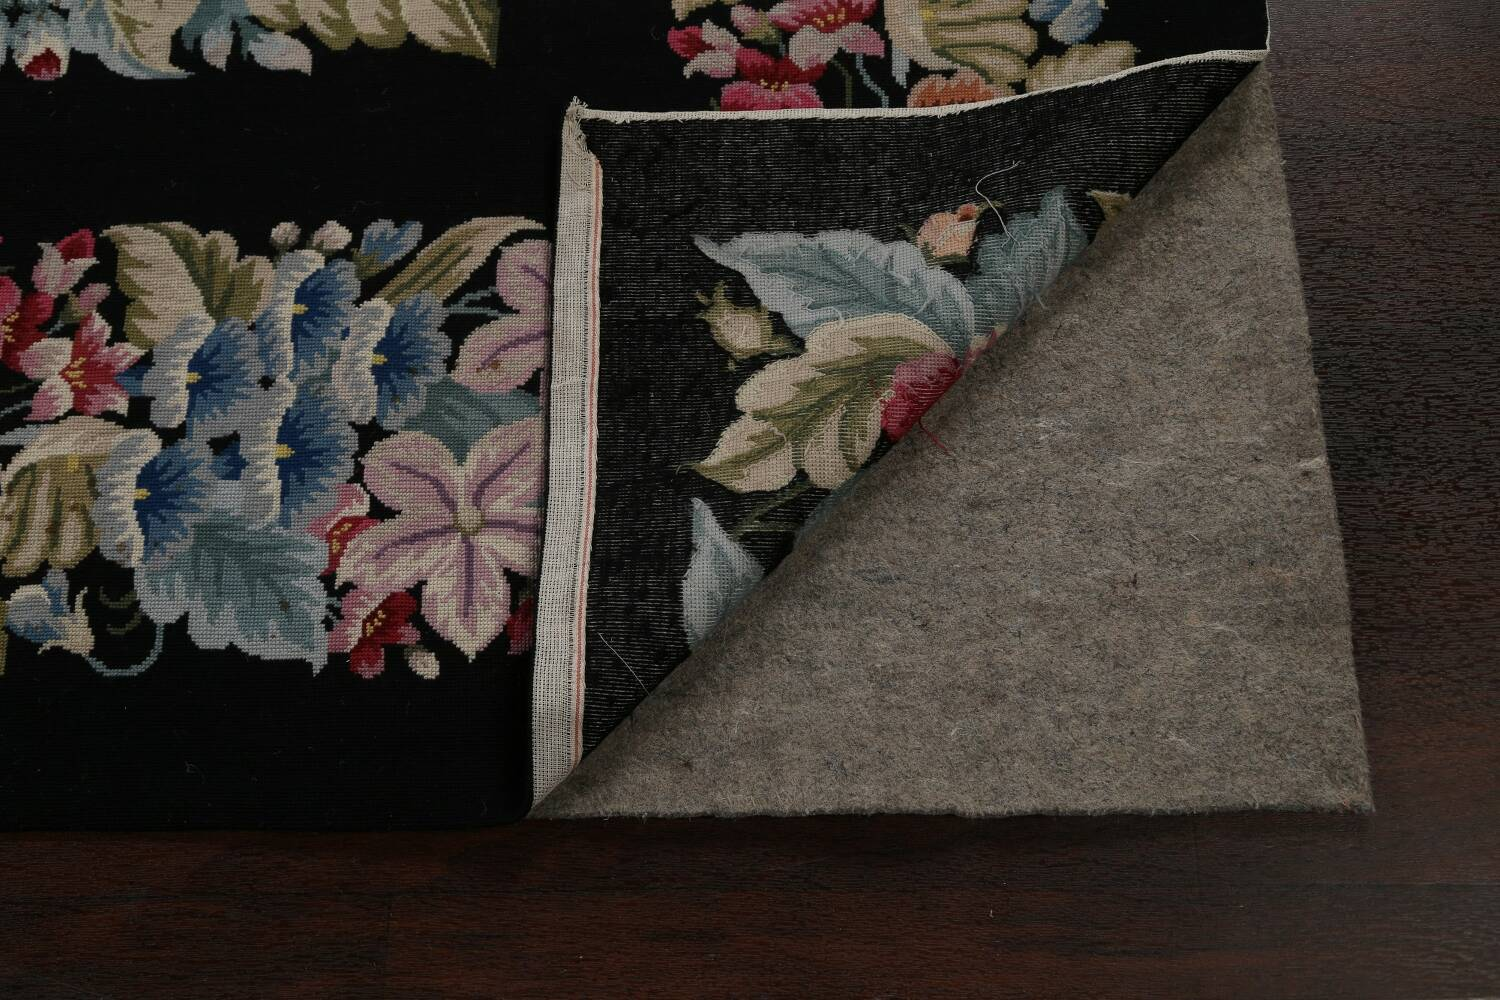 All-Over Floral Needlepoint Oriental Area Rug 10x14 image 7